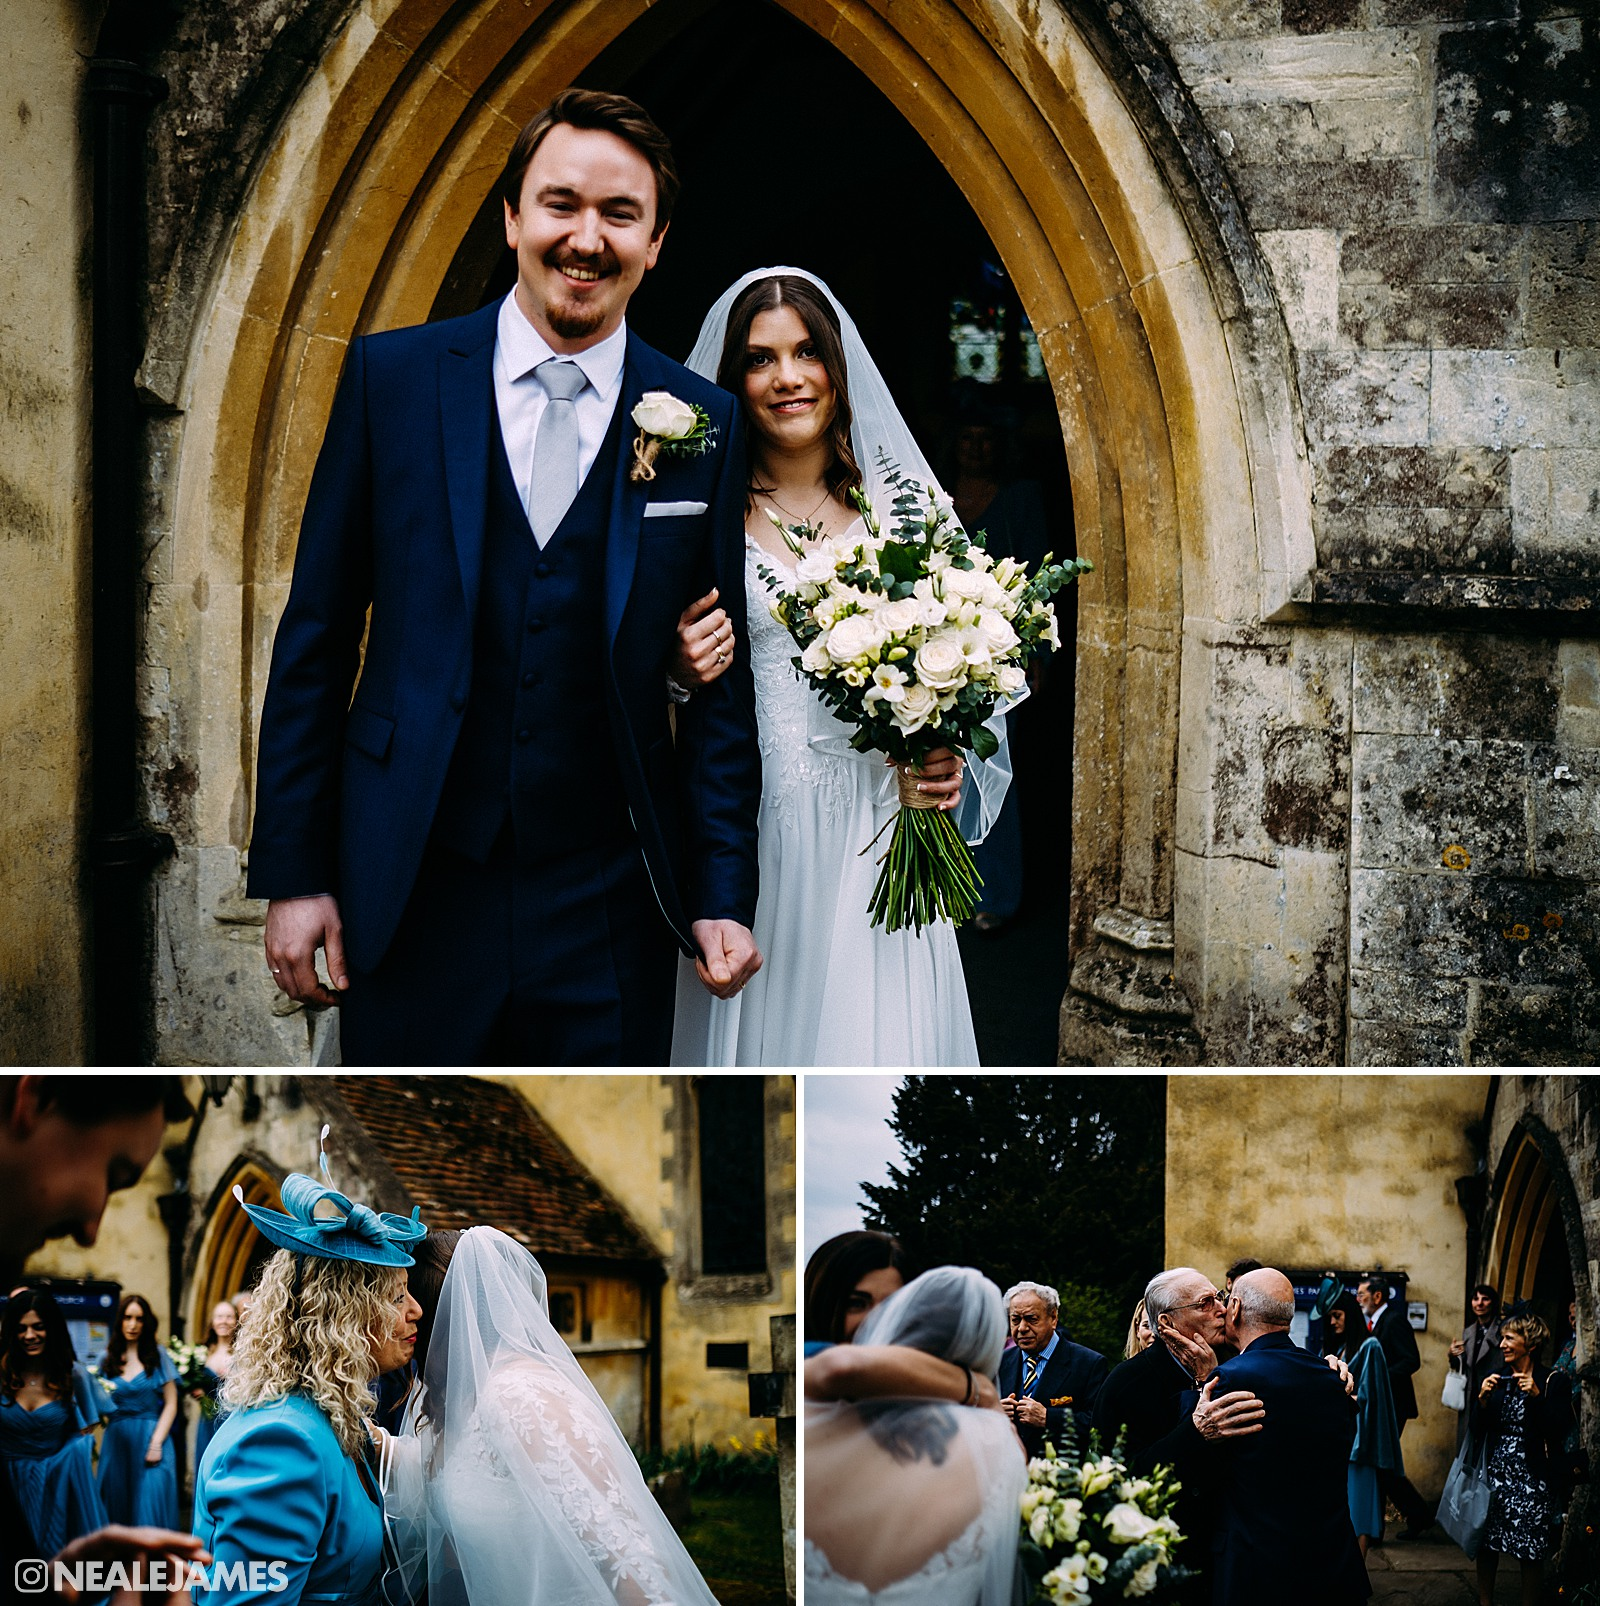 A colour picture of a bride and groom leaving church